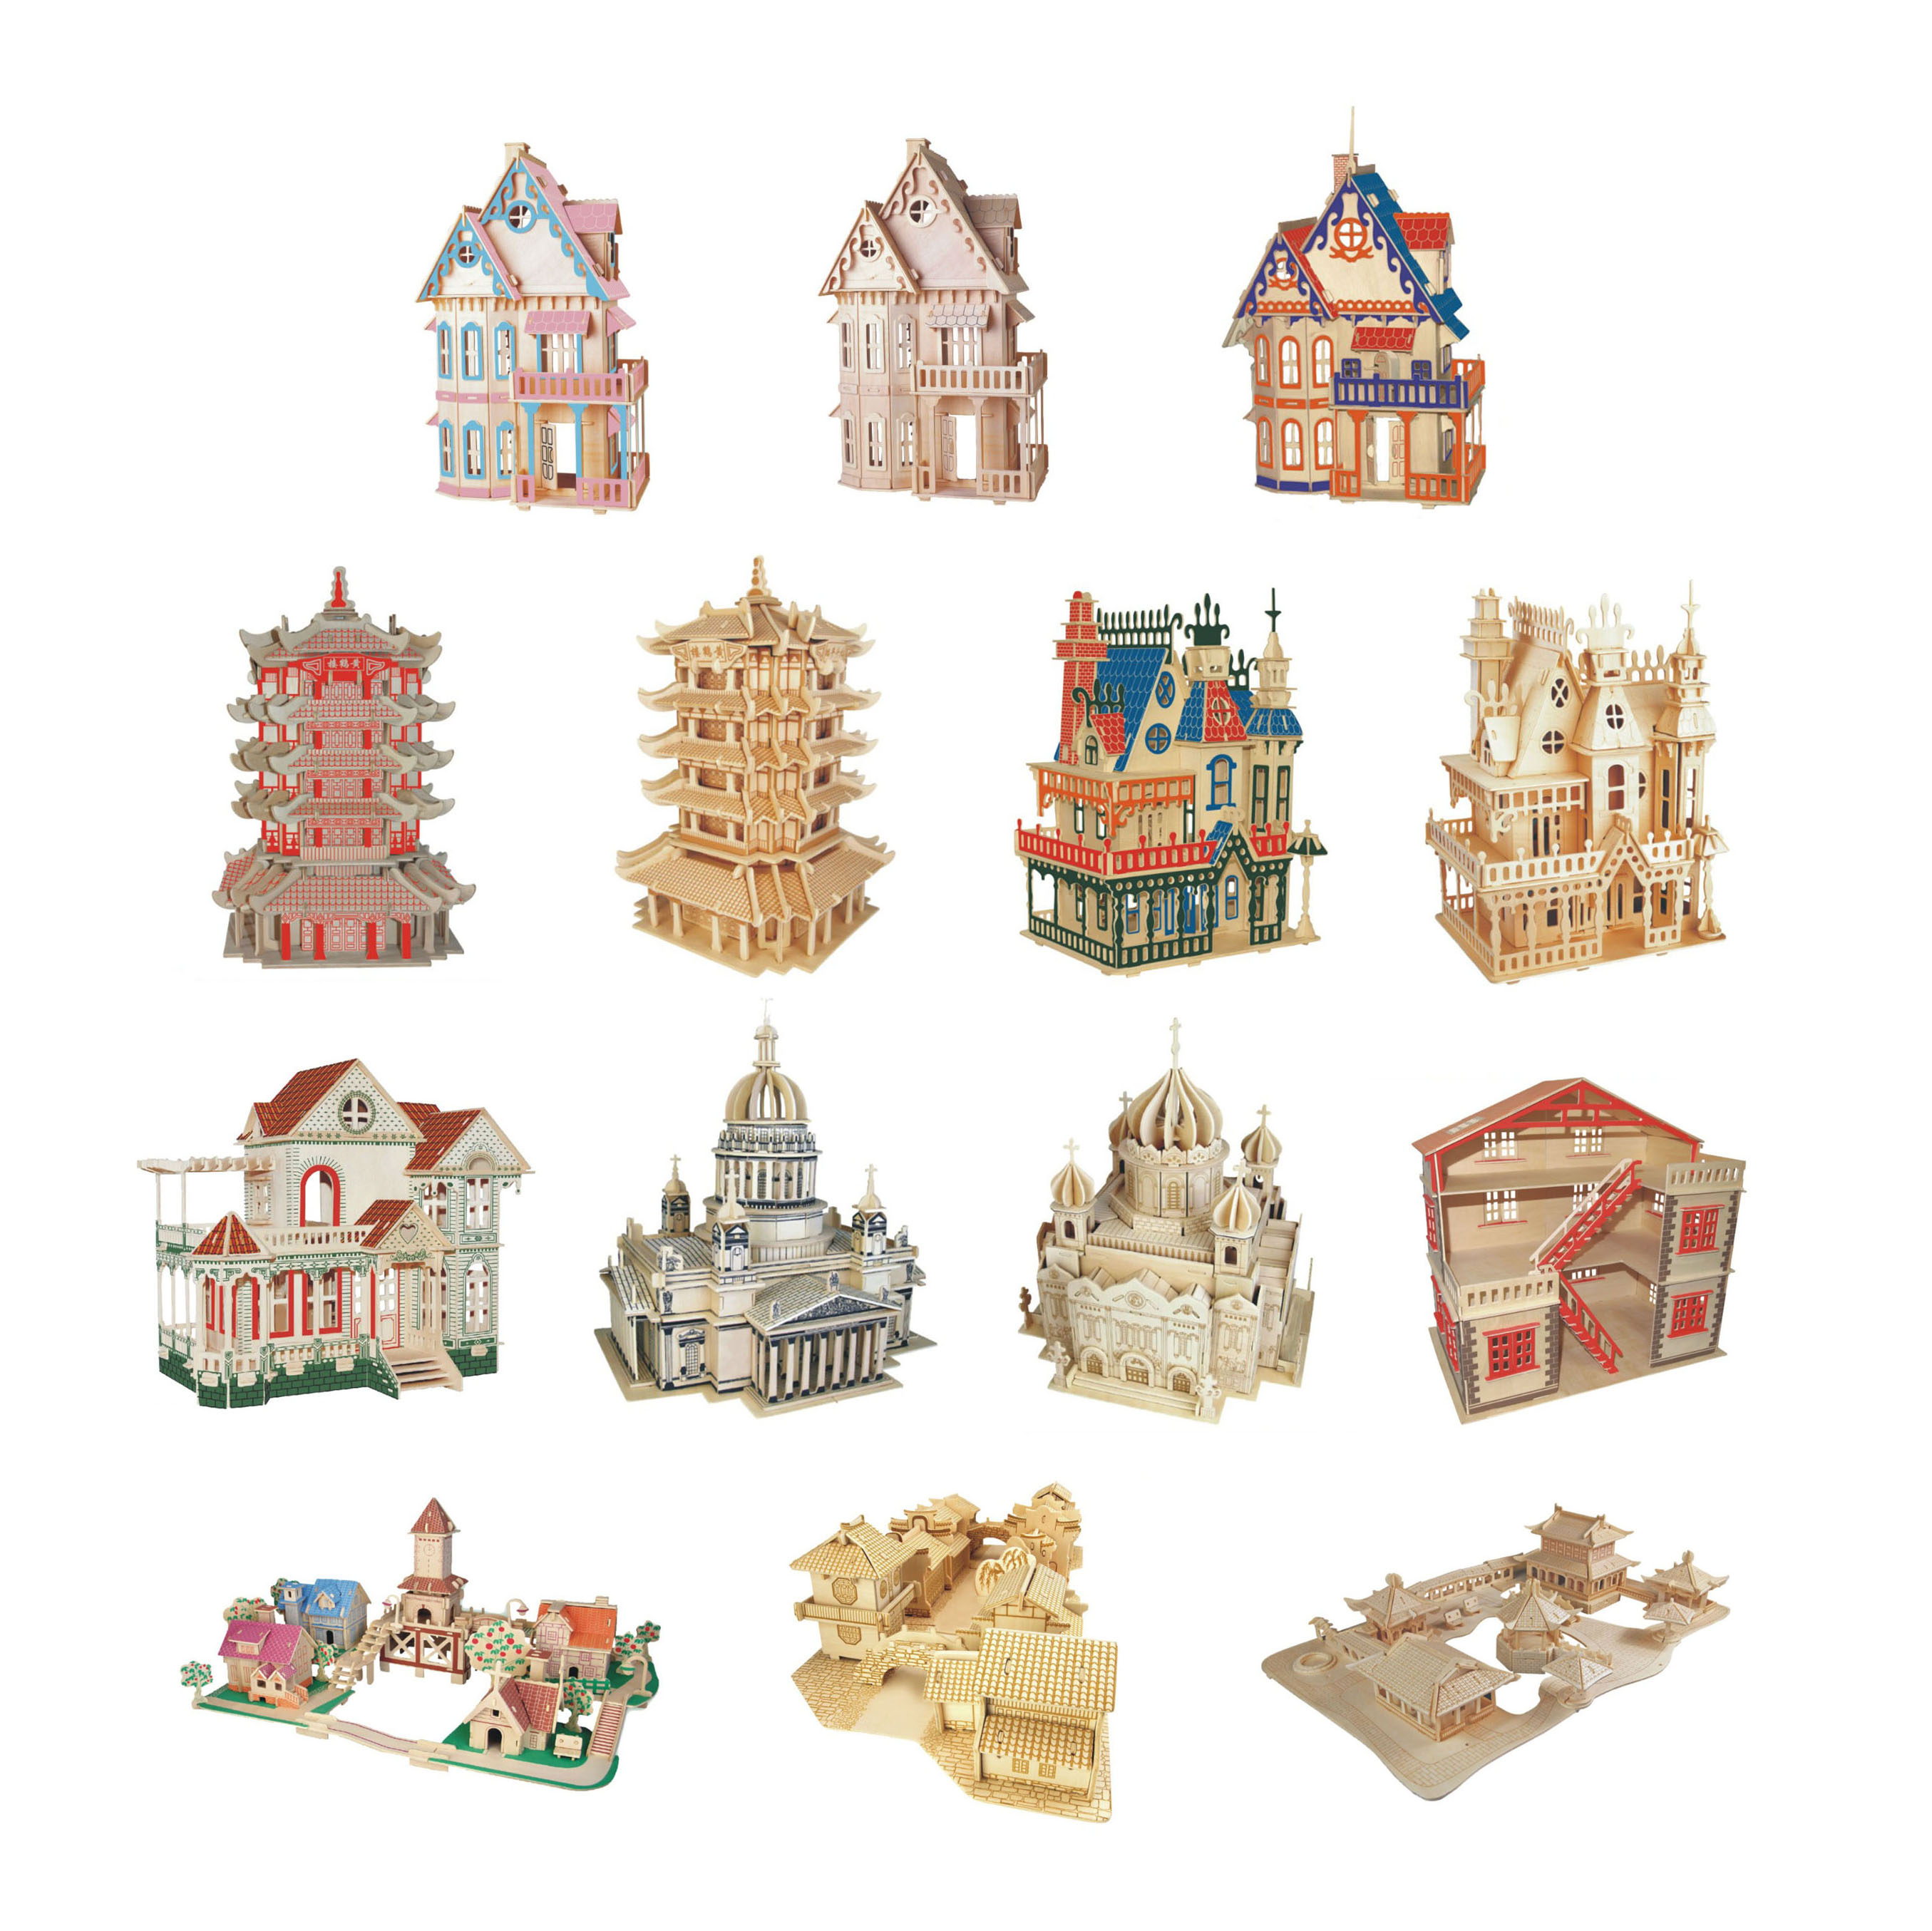 Chanycore Baby Learning Educational Wooden Toys 3D Puzzle Building House Church Villa Garden Gothic Architecture Kid Gift 4314 puzzled gothic house wooden 3d puzzle construction kit